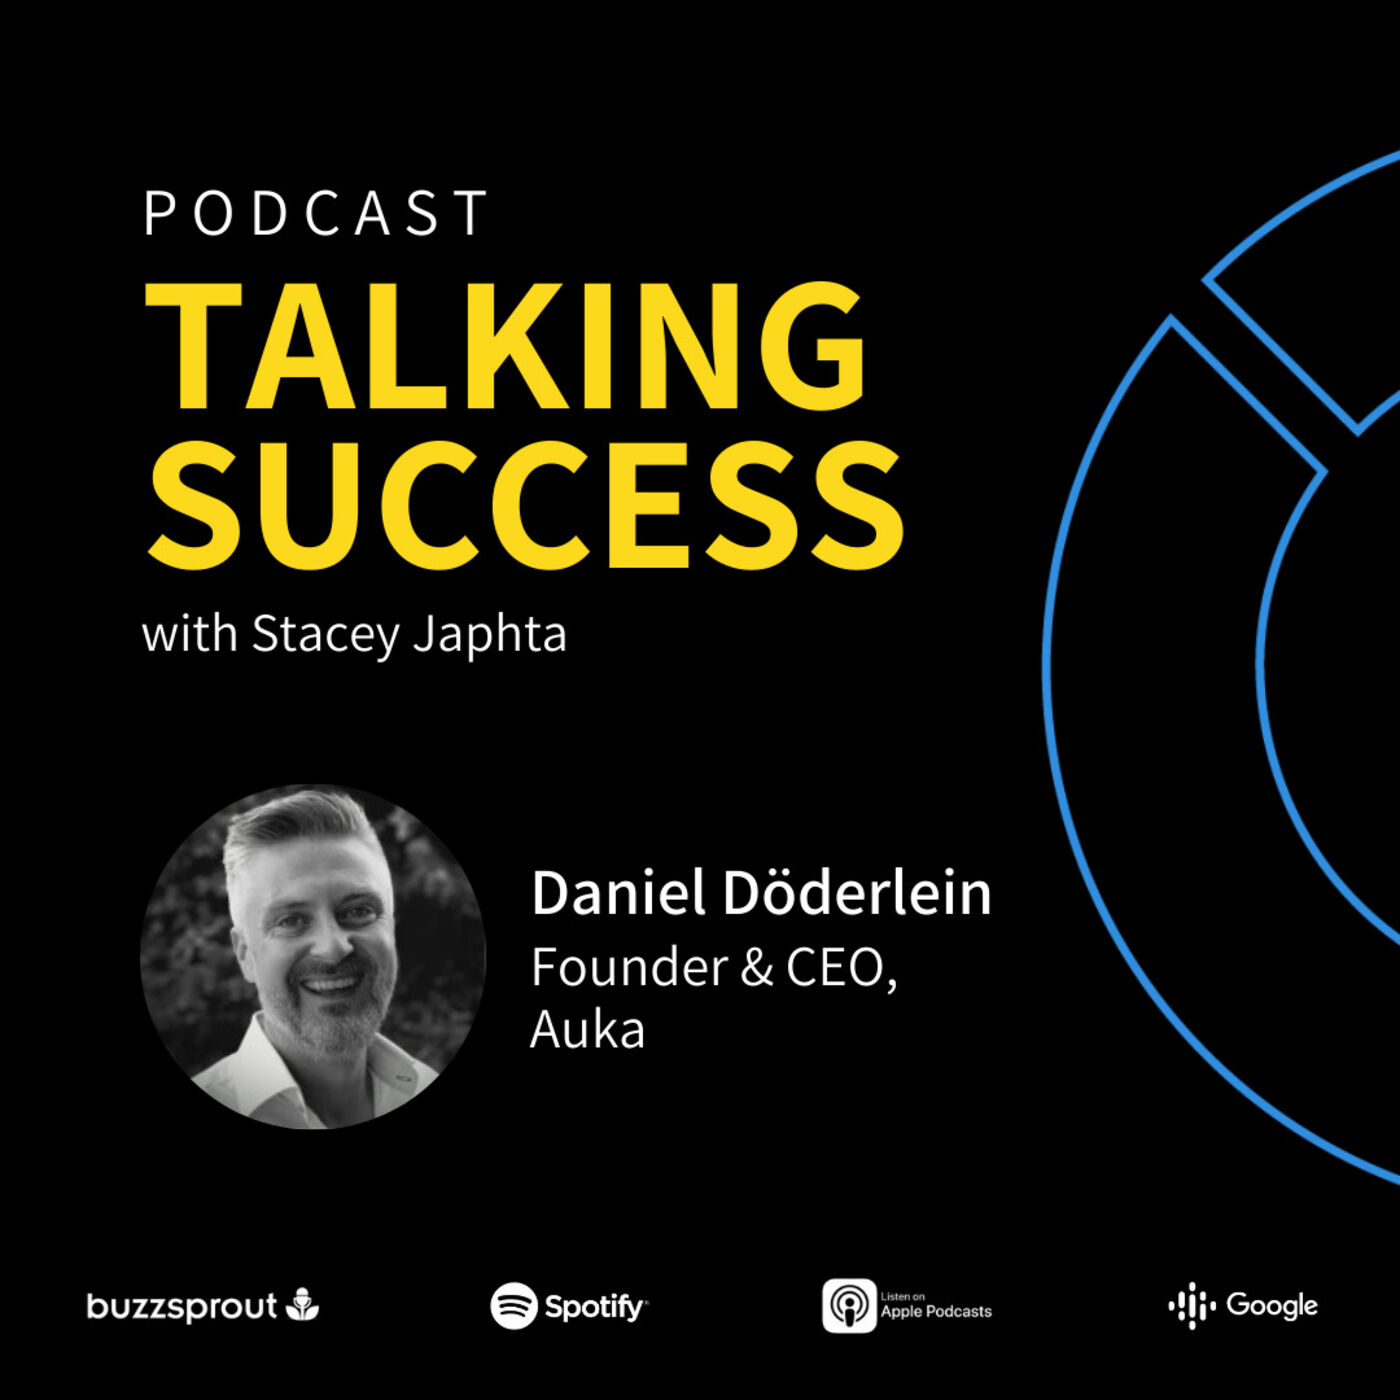 Daniel Döderlein, CEO & Founder of Auka - All things FinTech, launching a product directly to the market, & the steps to finding the right talent